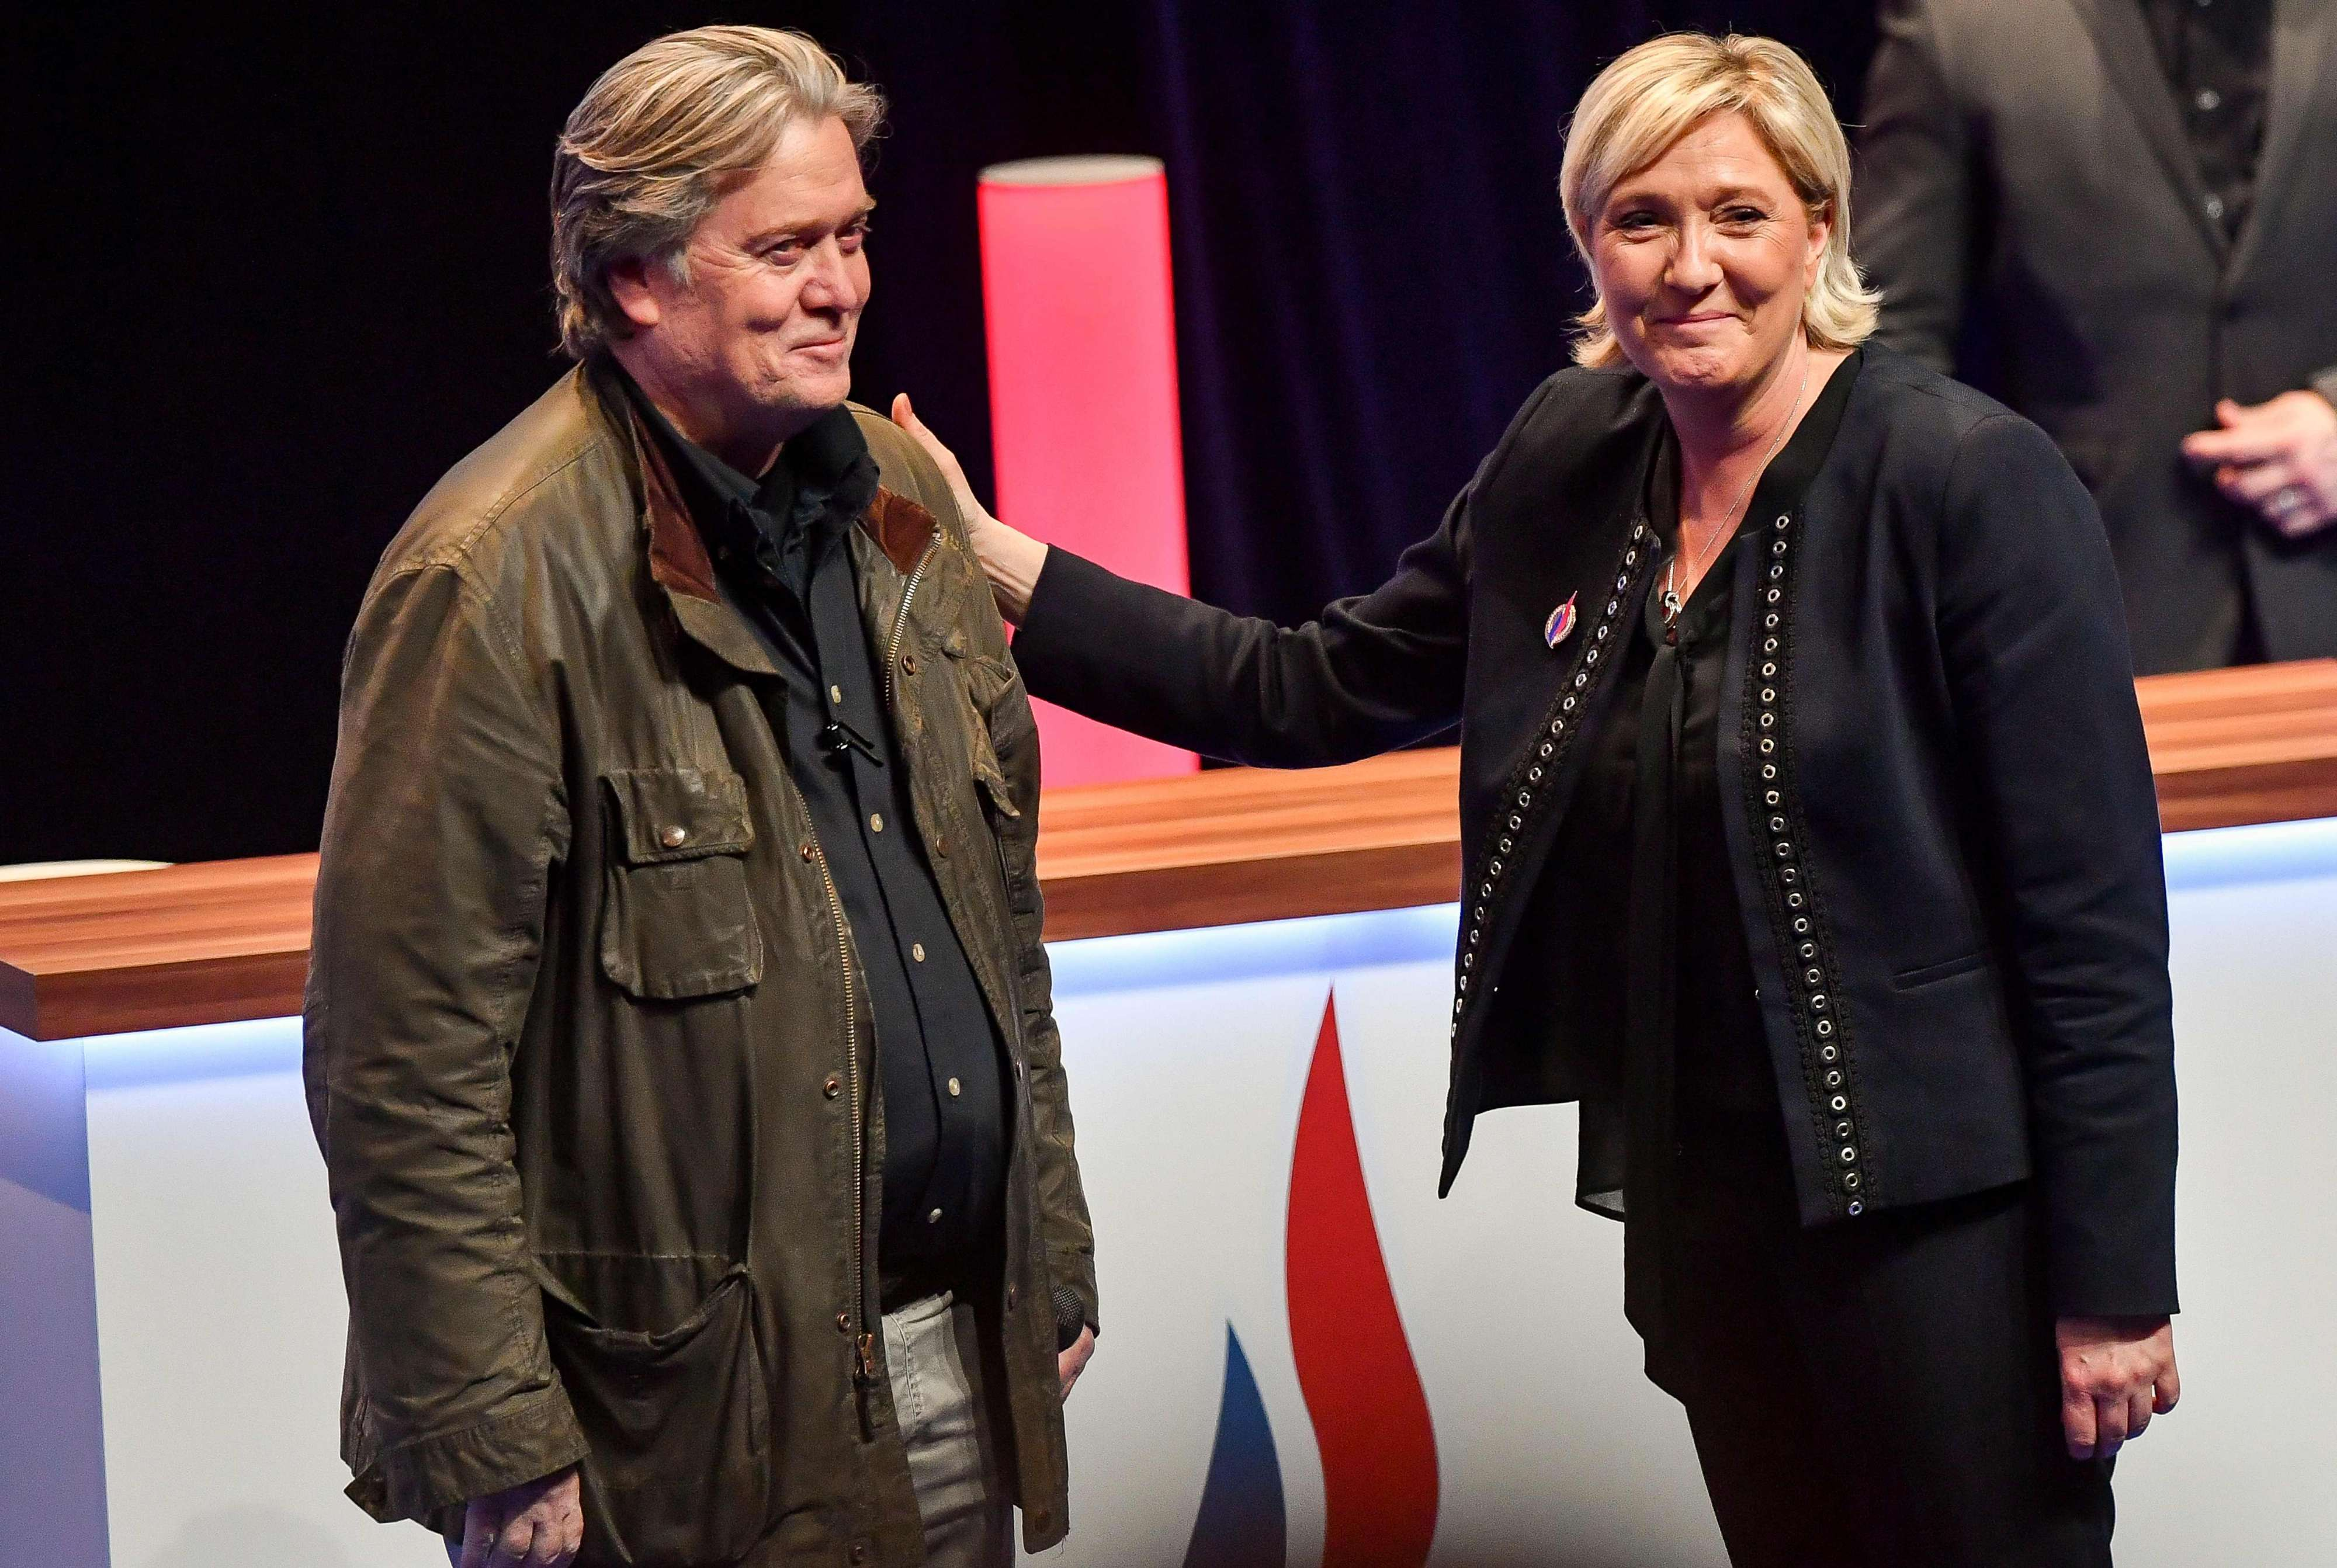 France's far-right party Front National (FN) leader Marine Le Pen (R) stands with former US president adviser Stephen Bannon after his speech at the Grand Palais in Lille, on March 10.   (AFP)